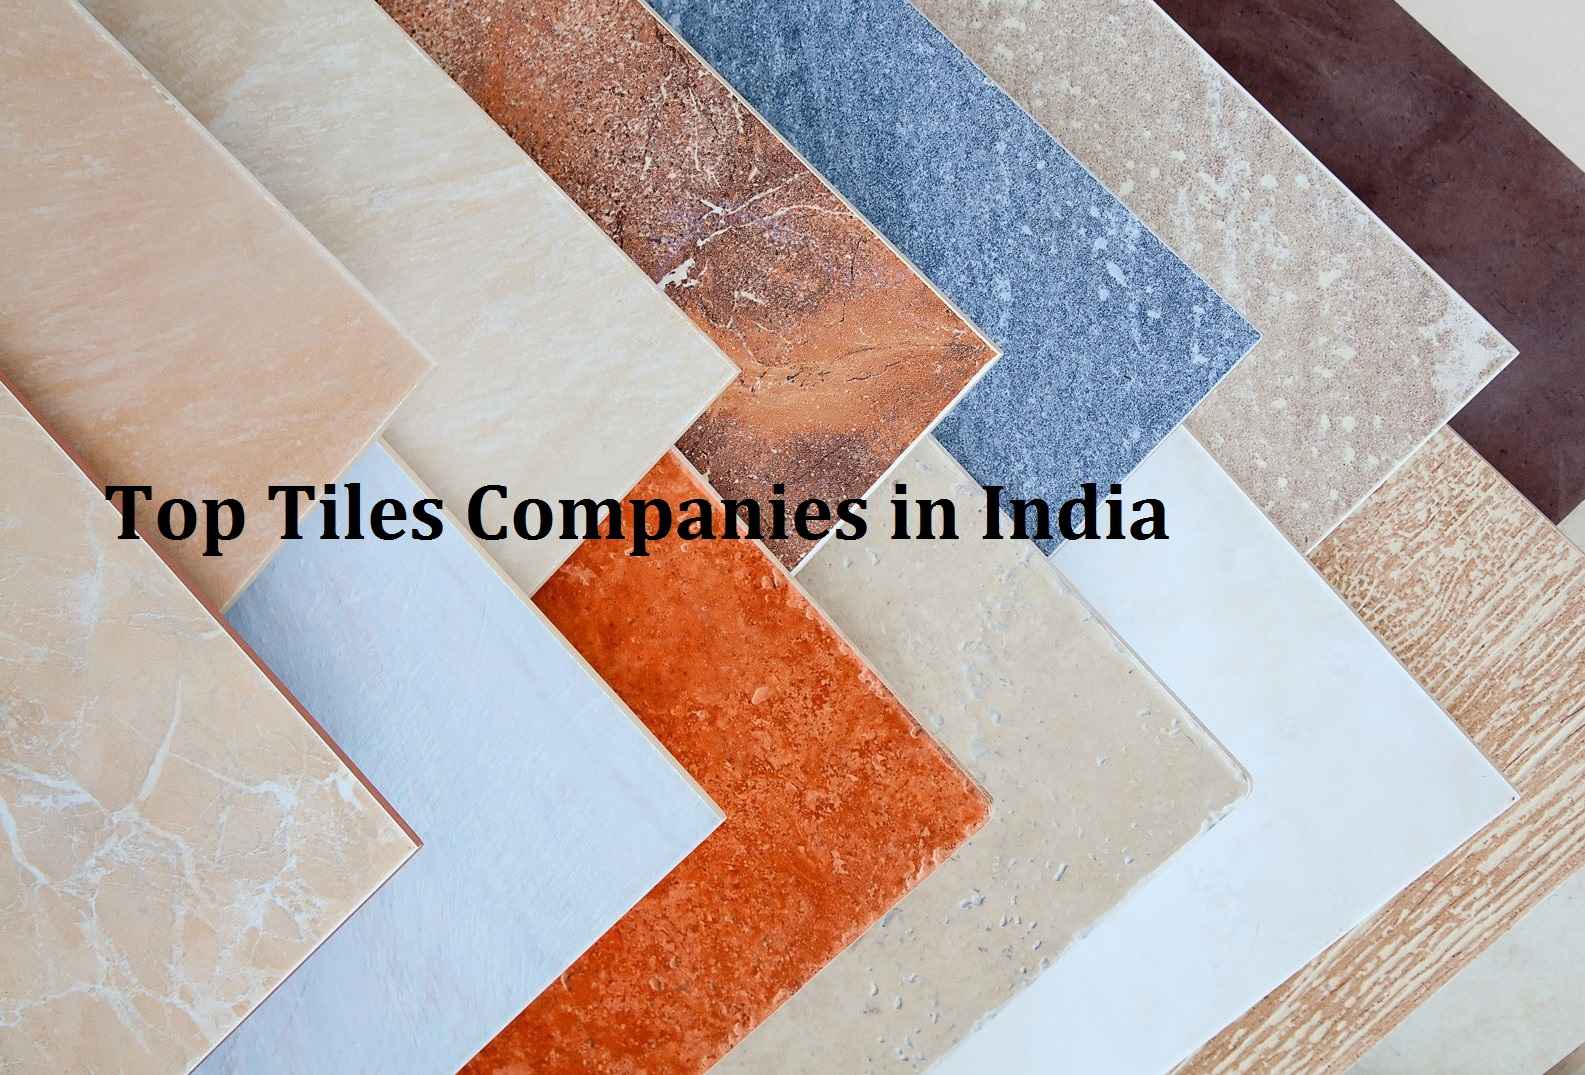 List Of Top 10 Tiles Companies In India Learning Center Fundoodata